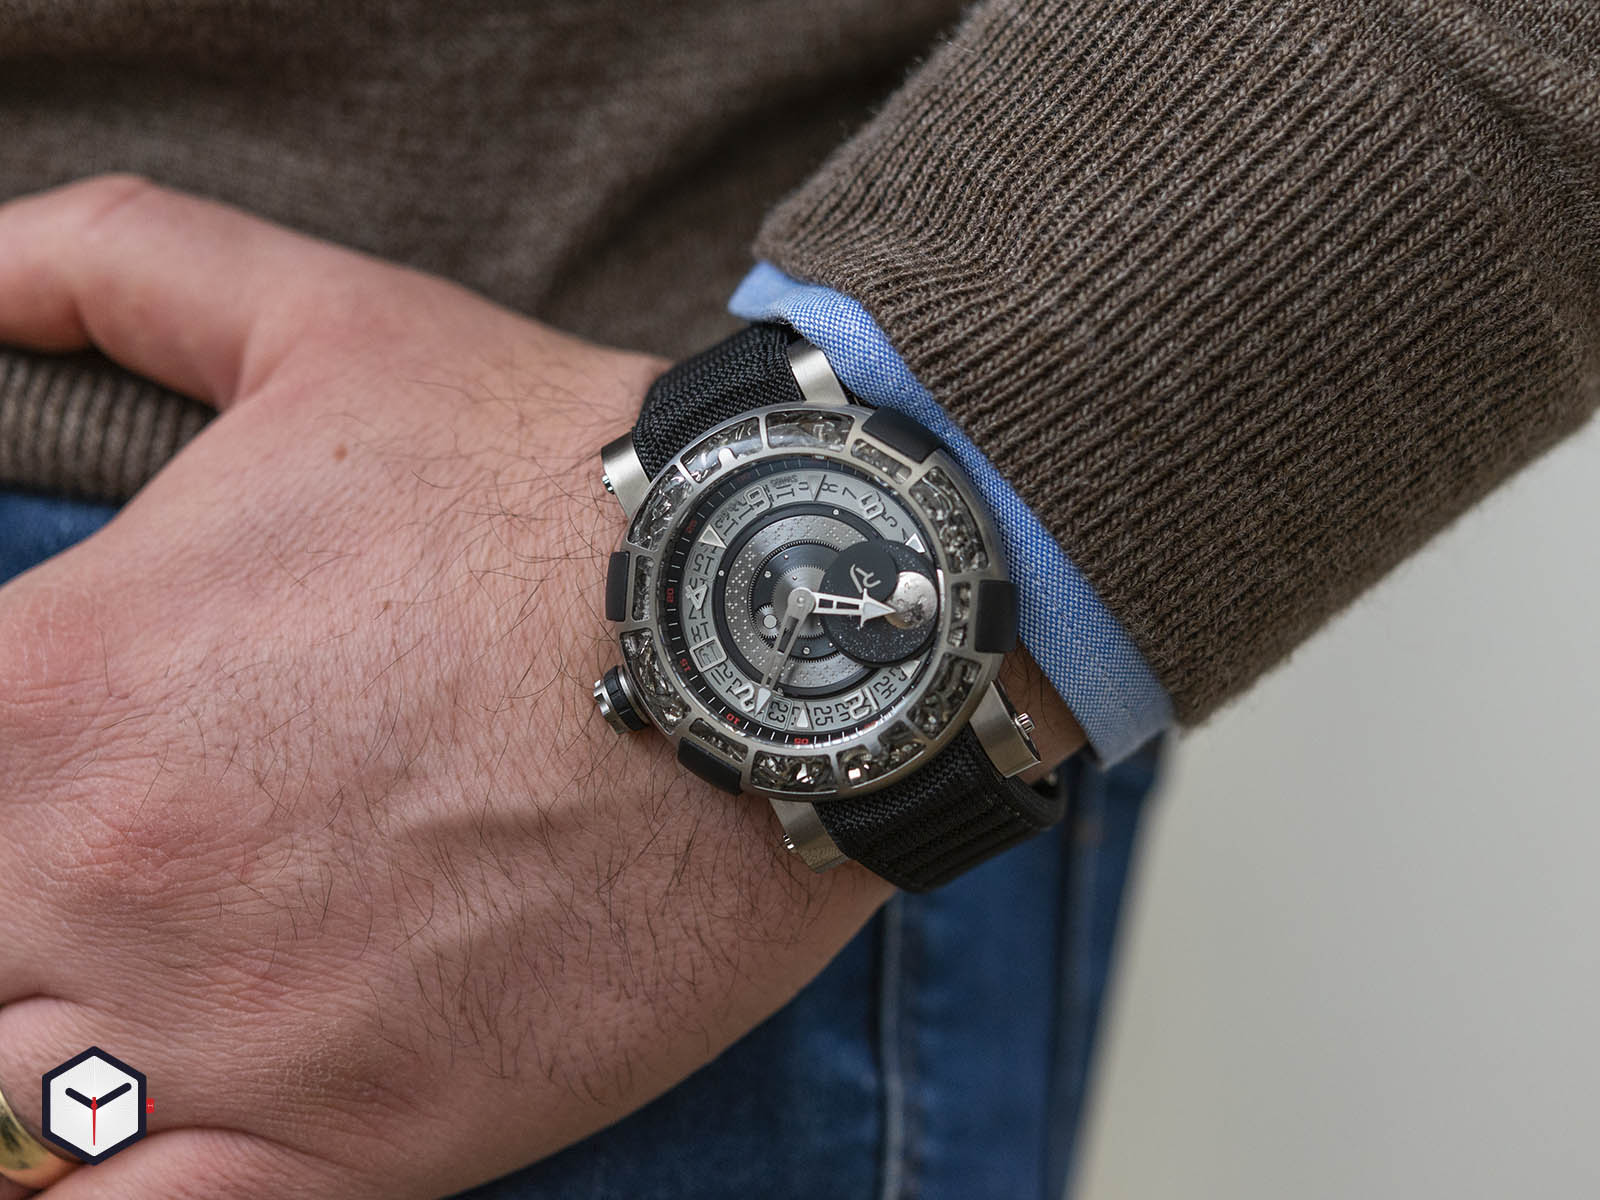 1s45l-tztr-8023-pr-asn19-romain-jerome-arraw-6919-space-titanium-sihh-2019-10.jpg